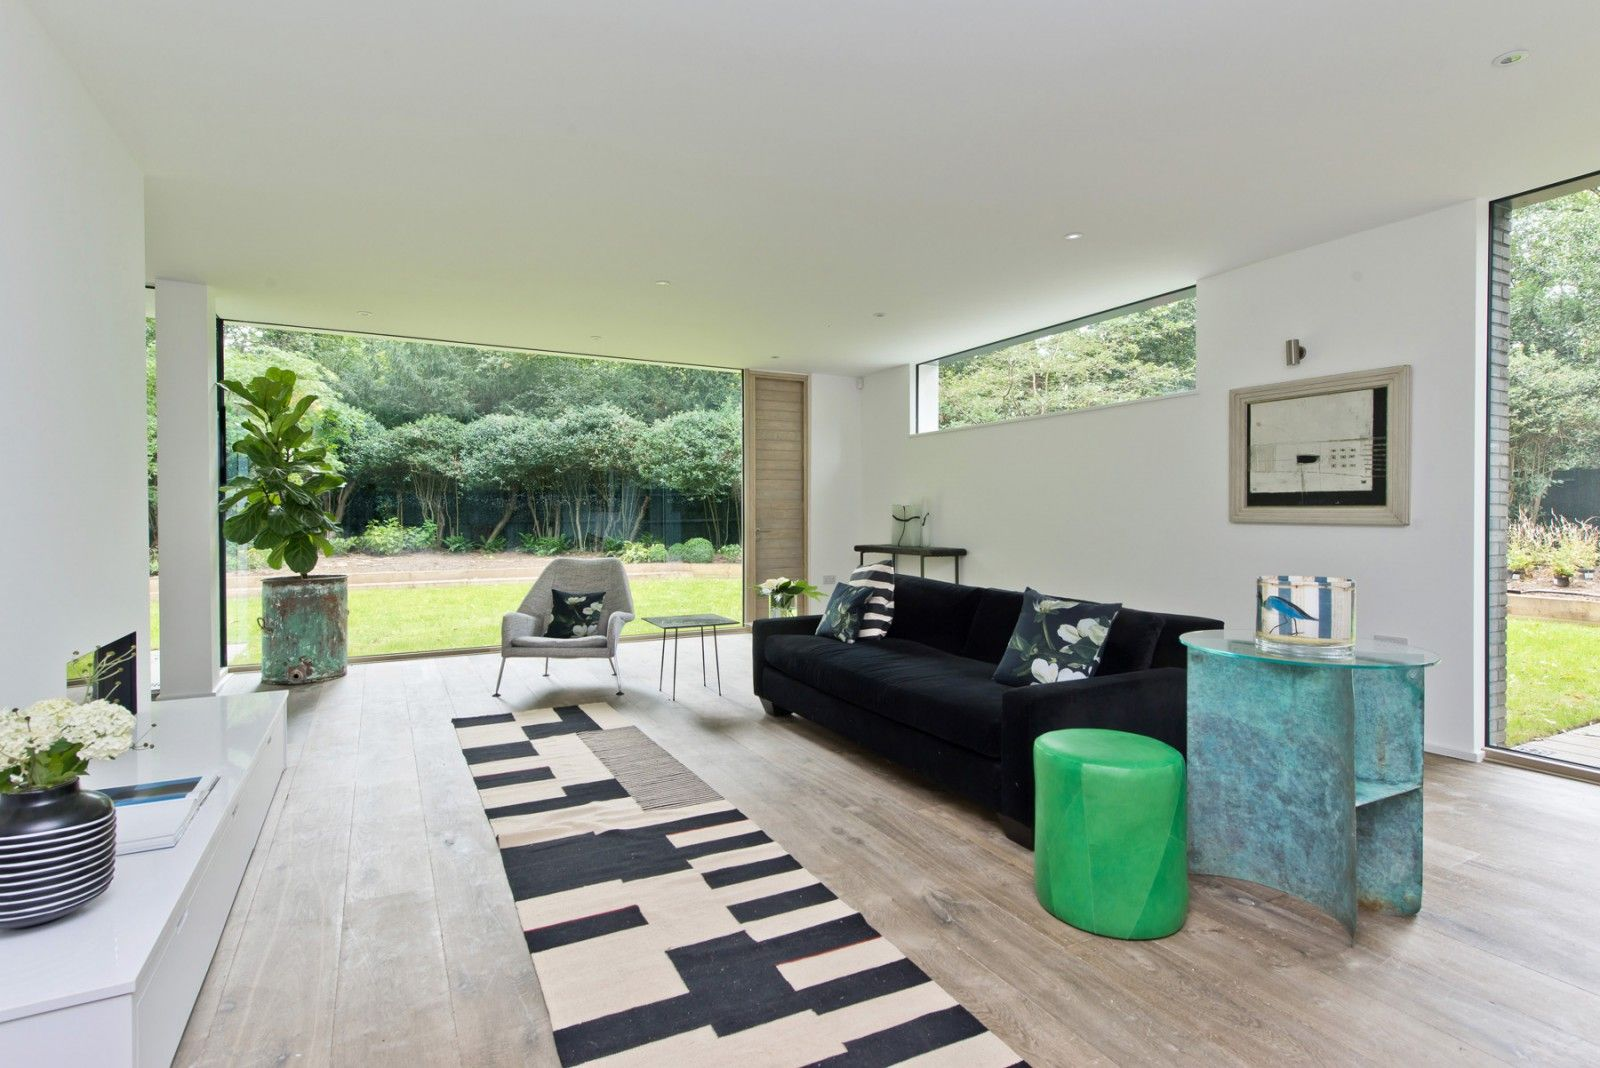 Fizazz knight frank pinterest surrey fc bedrooms and house